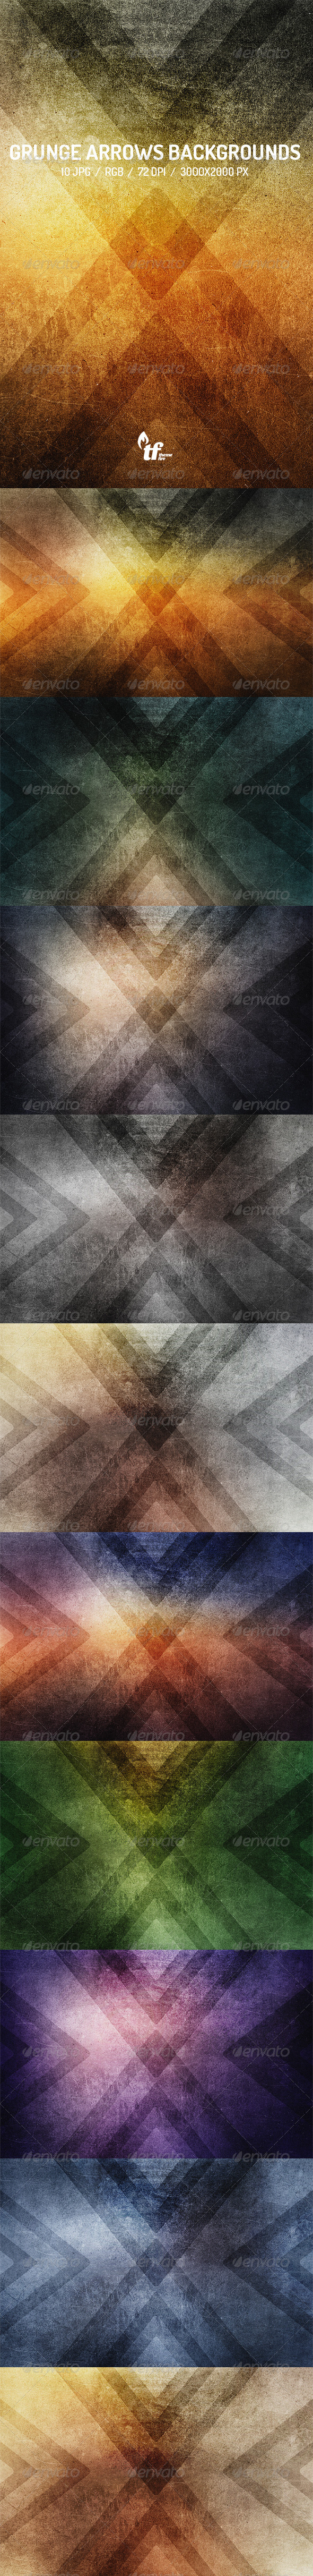 GraphicRiver Grunge Arrows Backgrounds 7805650